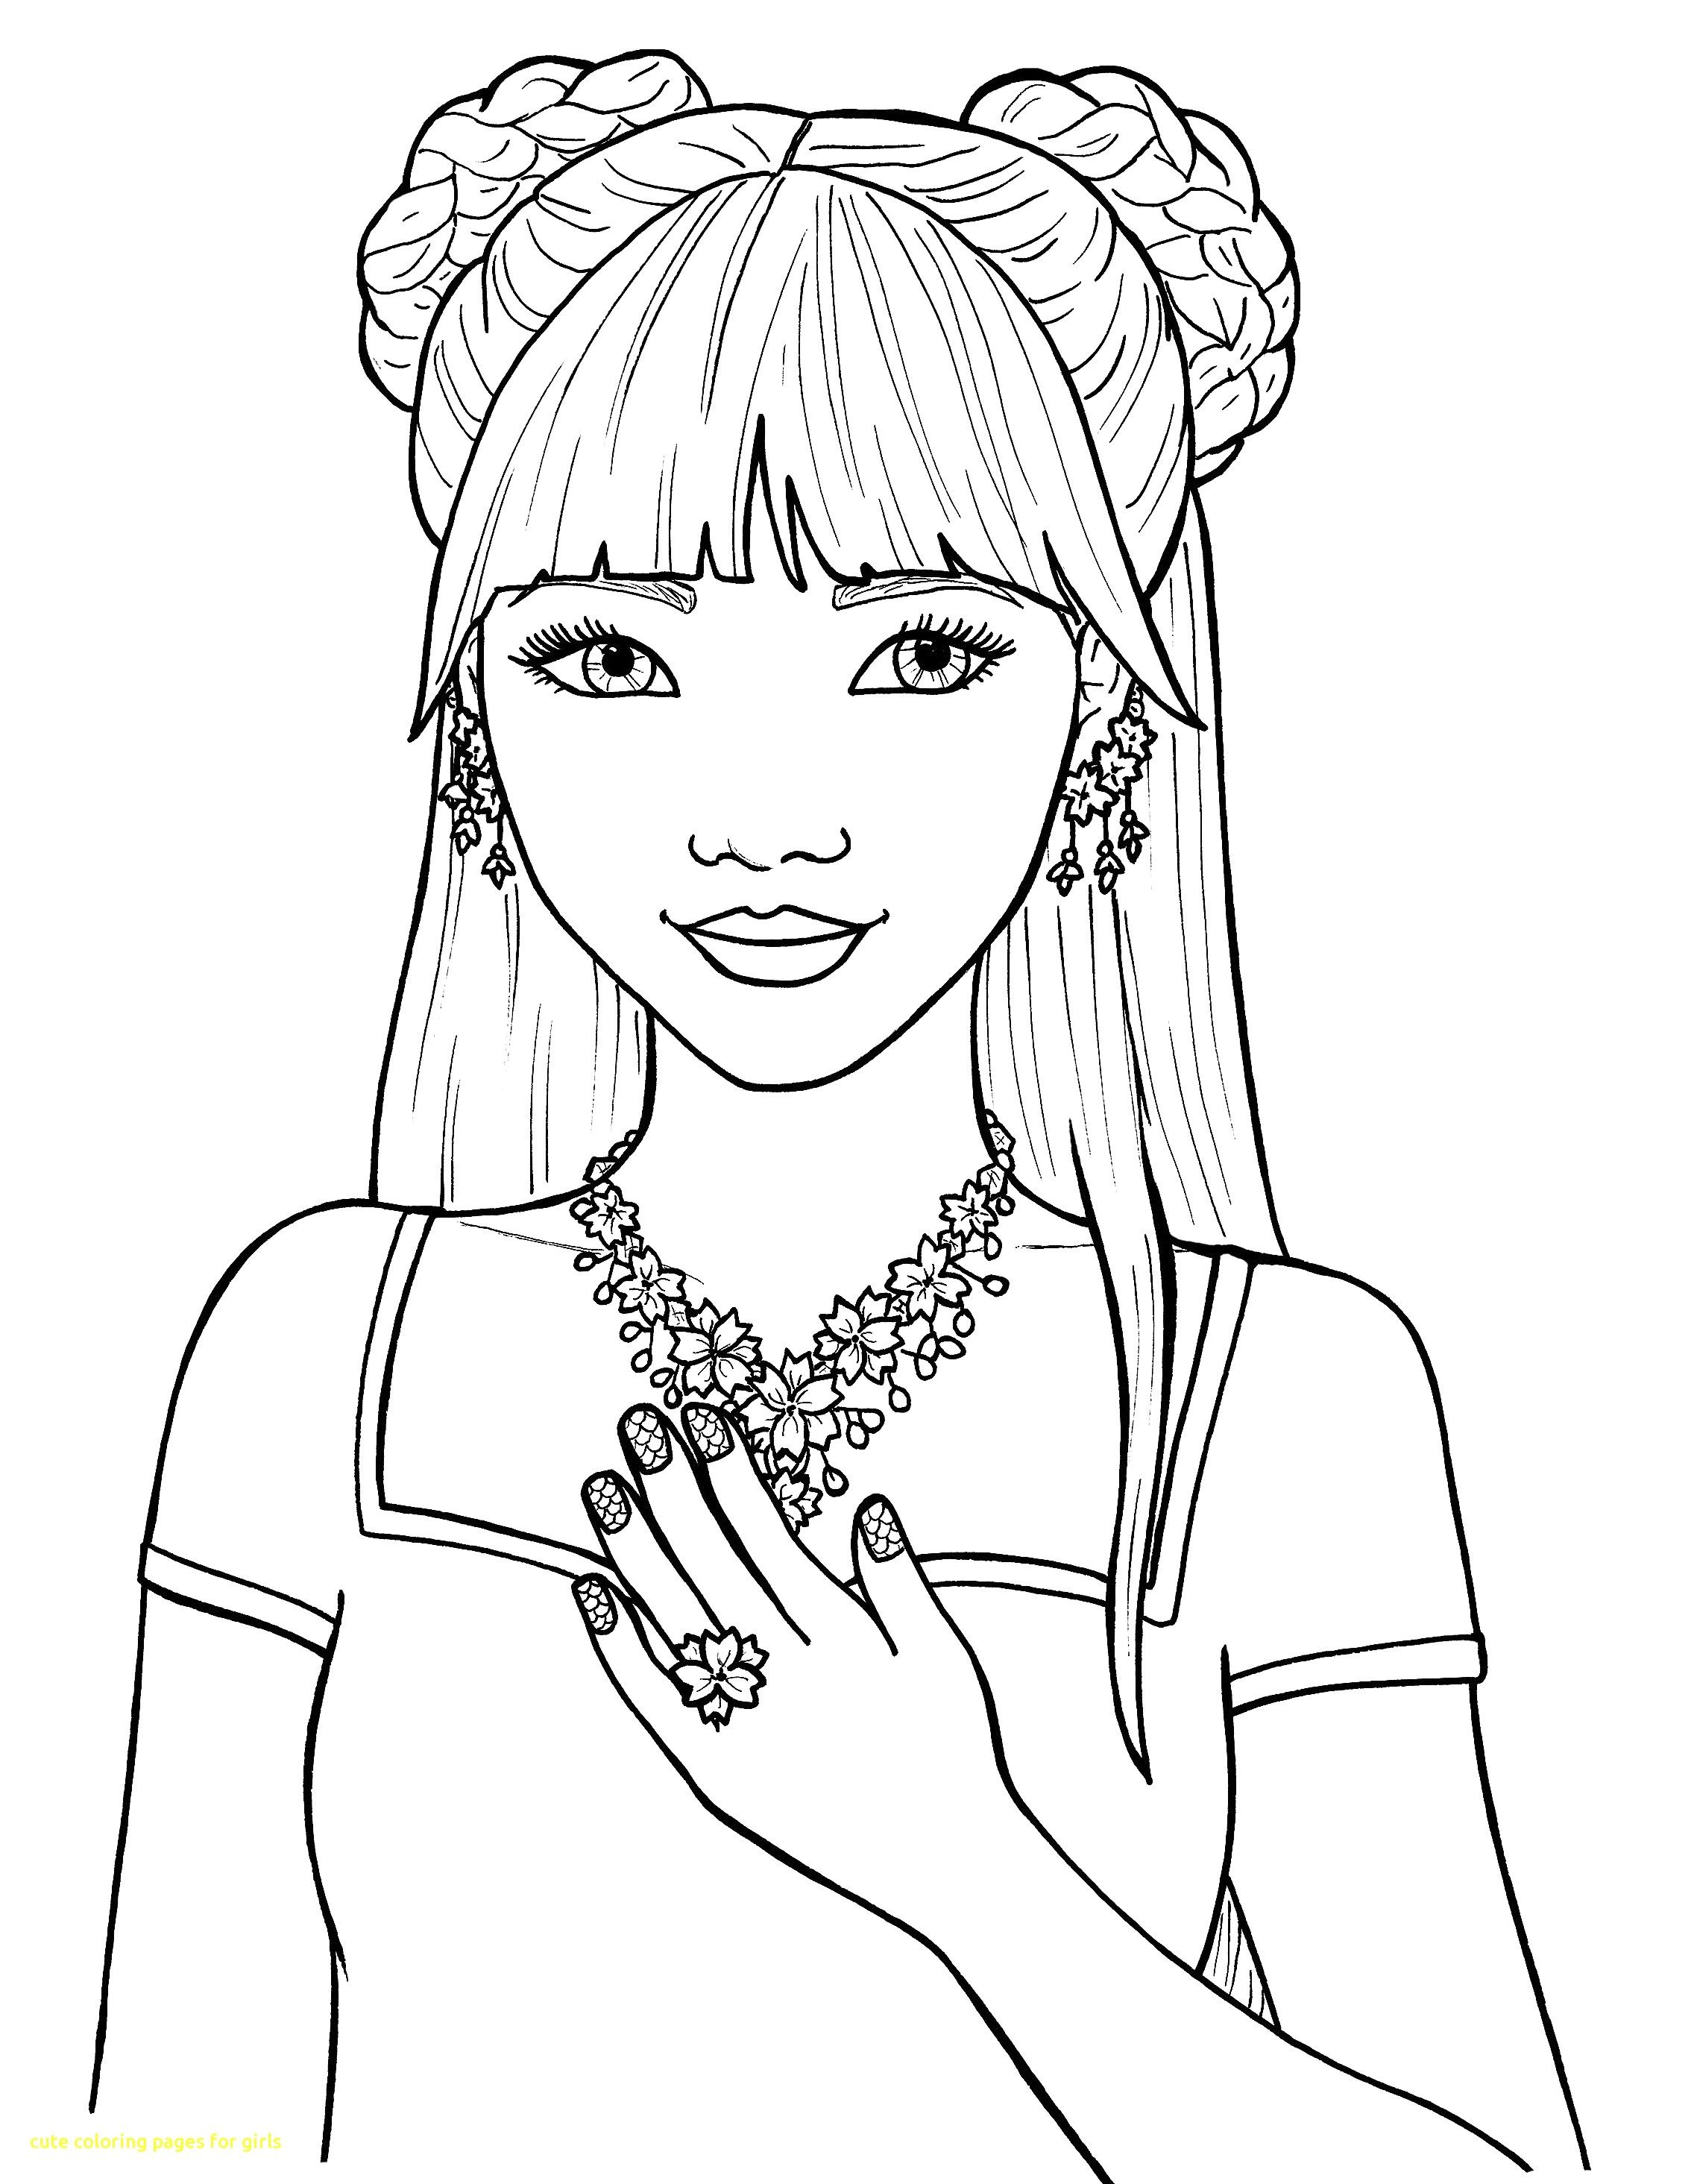 Cute Coloring Pages For Girls With Of Inside Teens Teenage ...